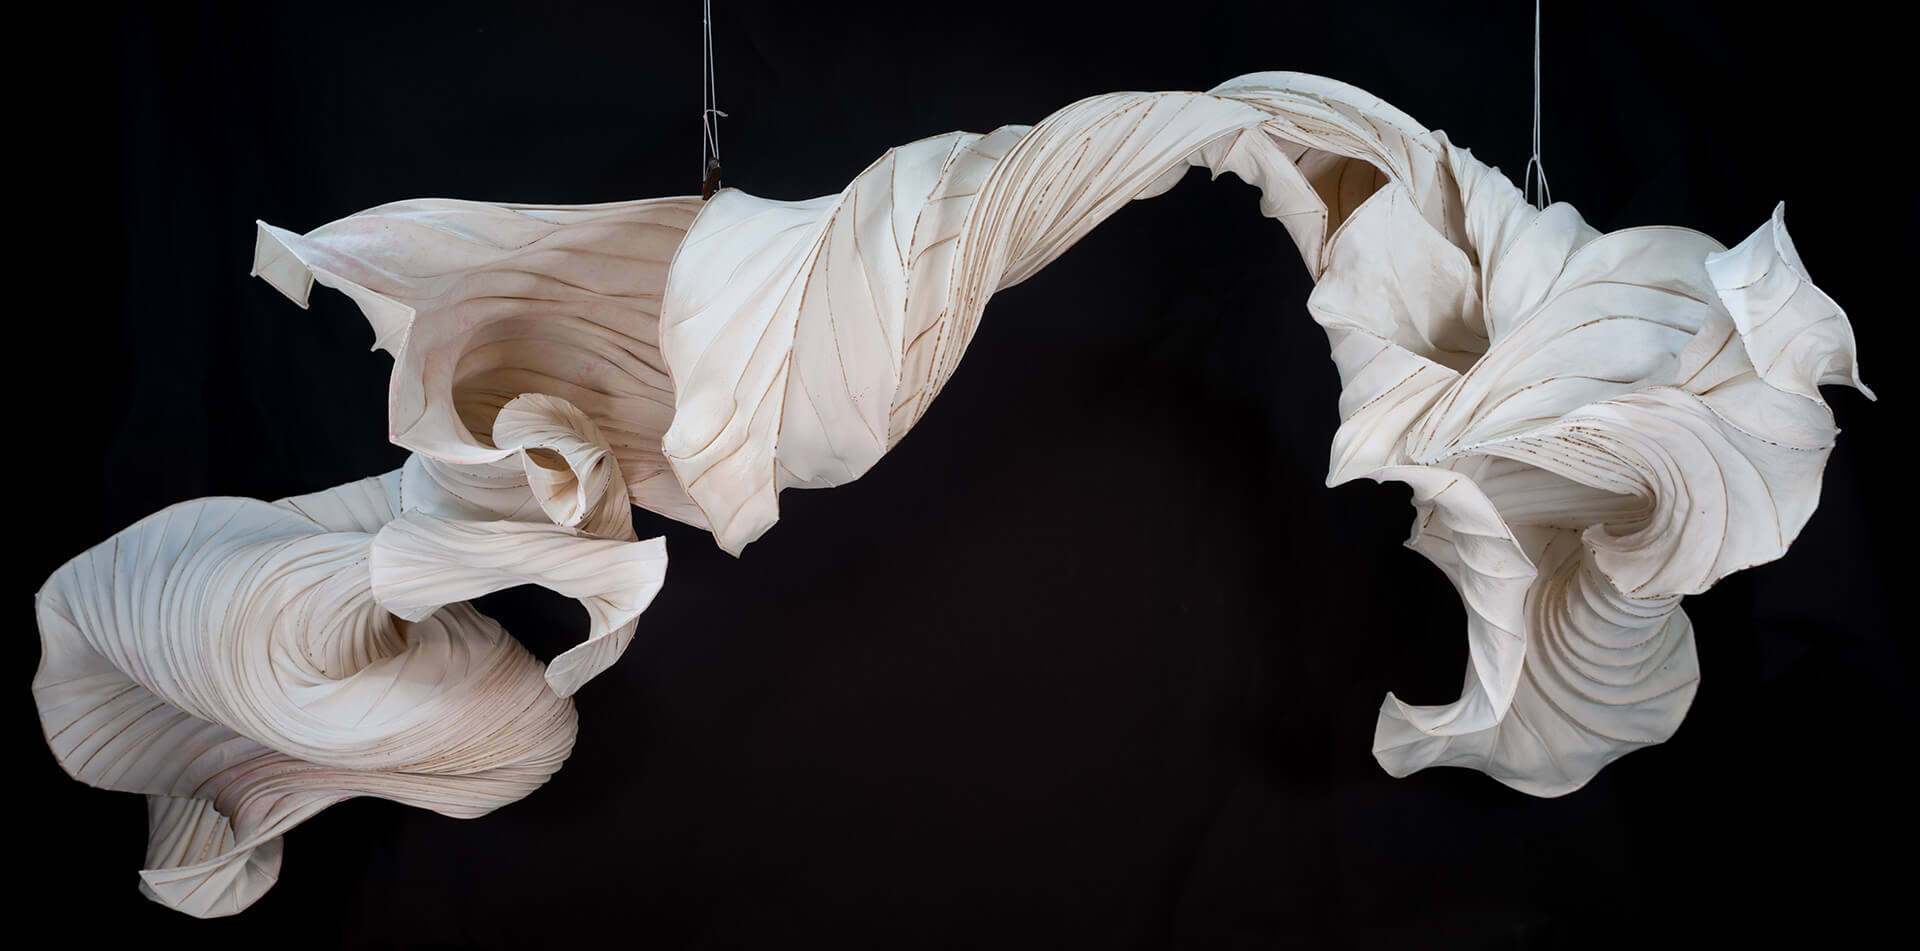 River Dragon, a part of the experience created by Gentenaar Troley Paper Artists | Iris van Herpen | Peter Gentenaar | STIRworld